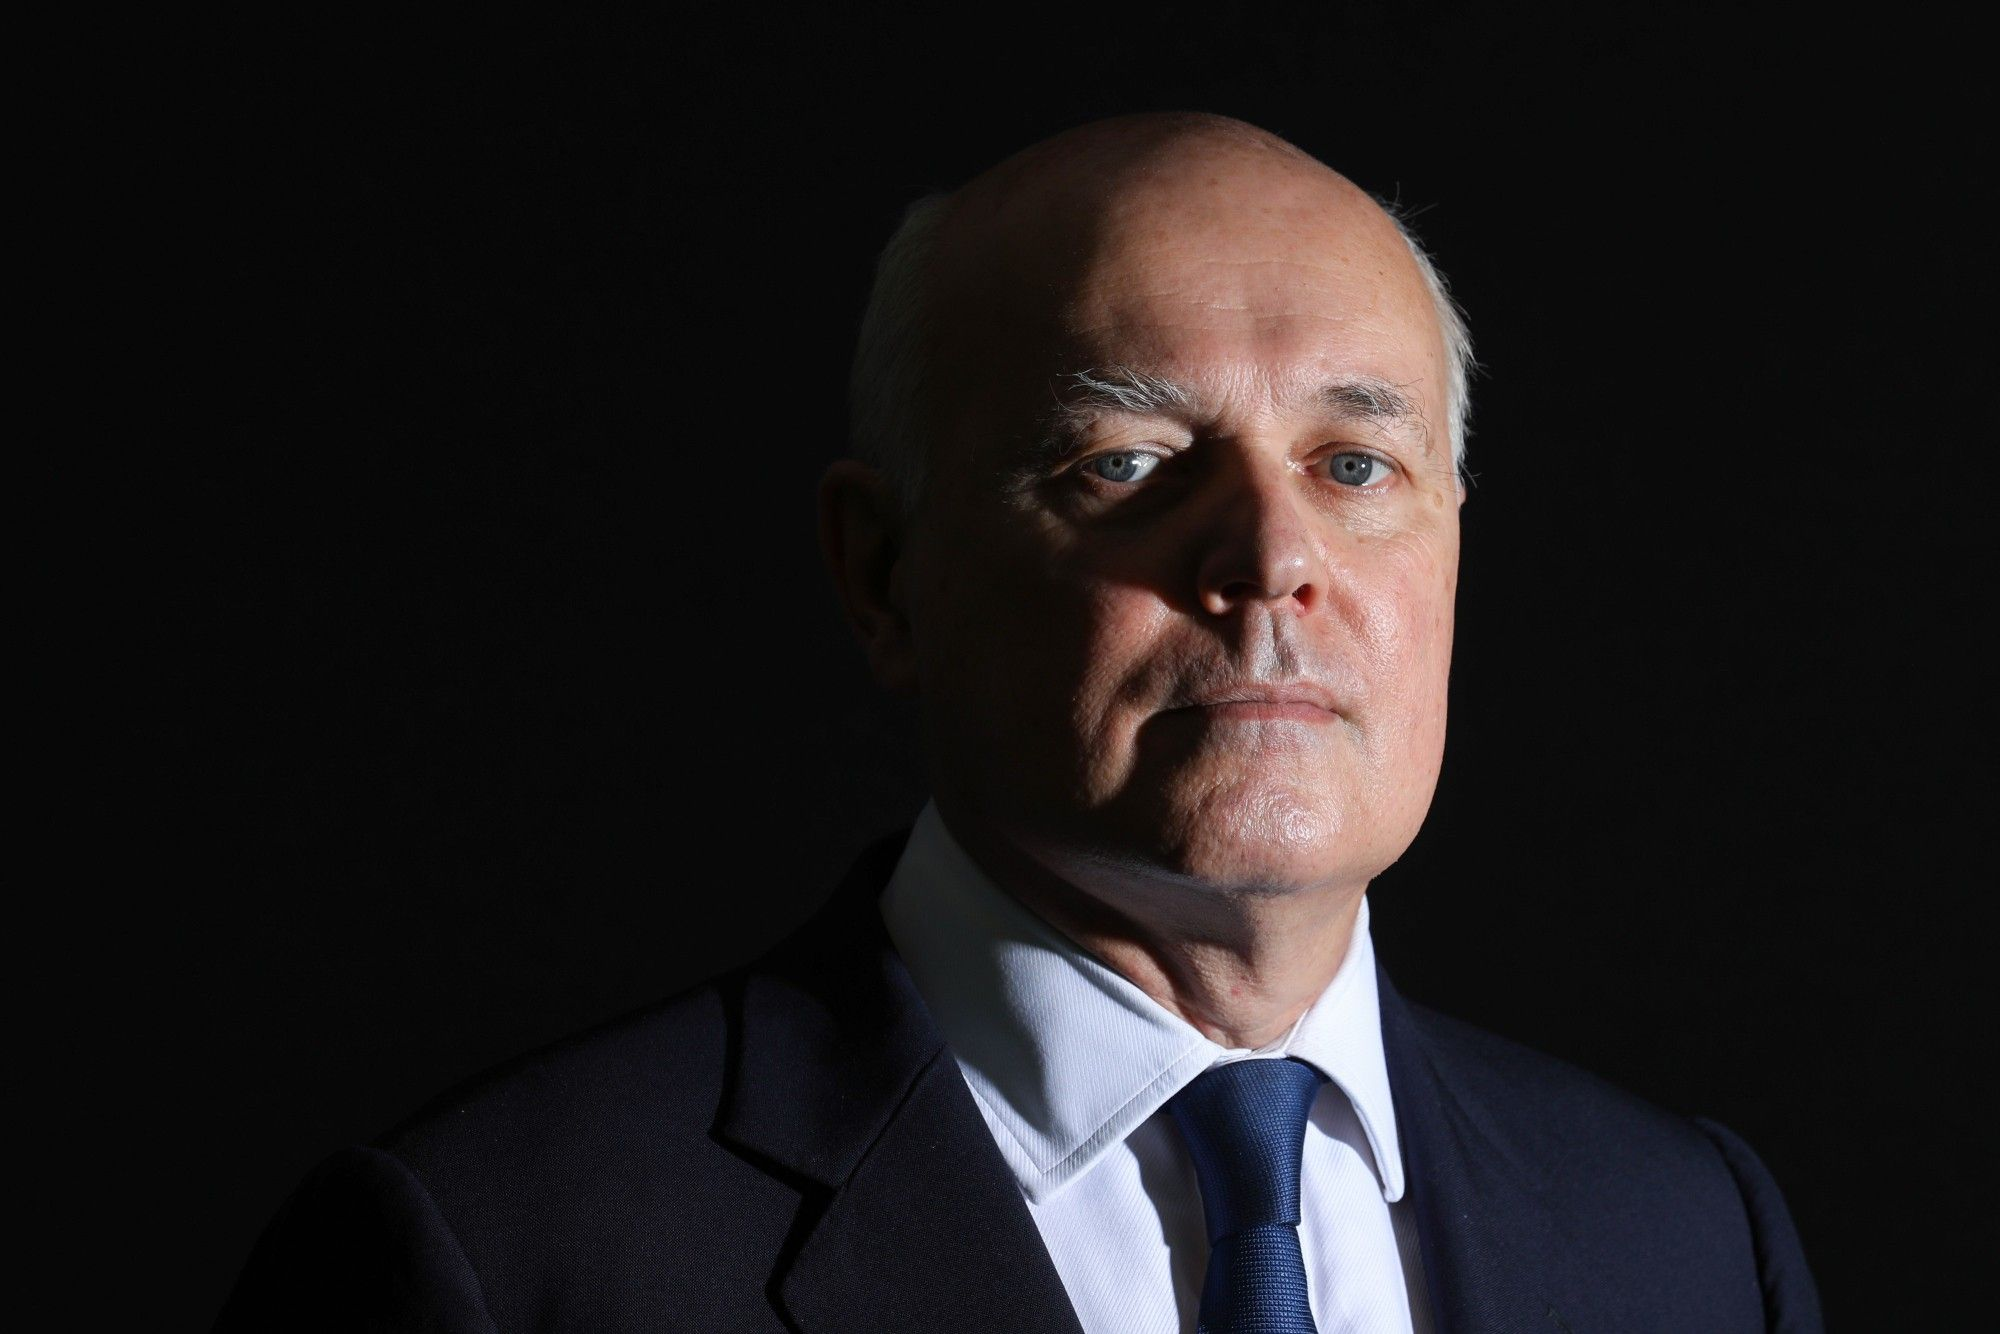 Former U.K. Conservative Party Leader Iain Duncan Smith Interview